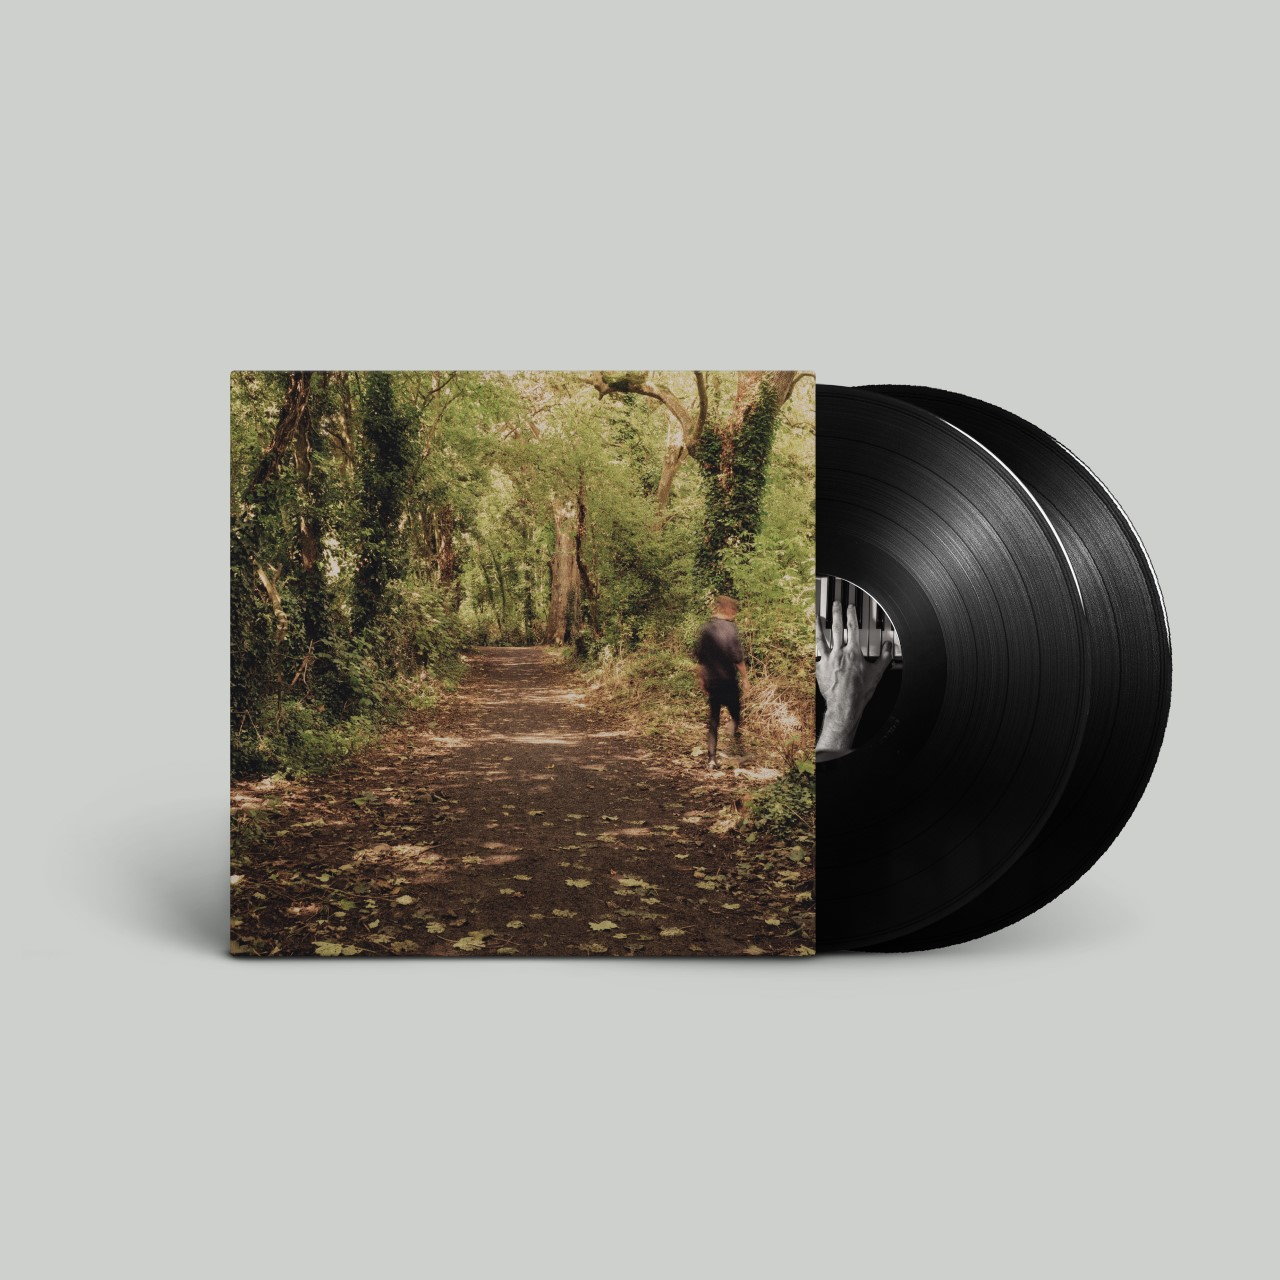 x2 vinyl album. Printed on recycled material - every copy will be a different colour.  Shipping from the UK in mid-November.  Available for pre-order now.